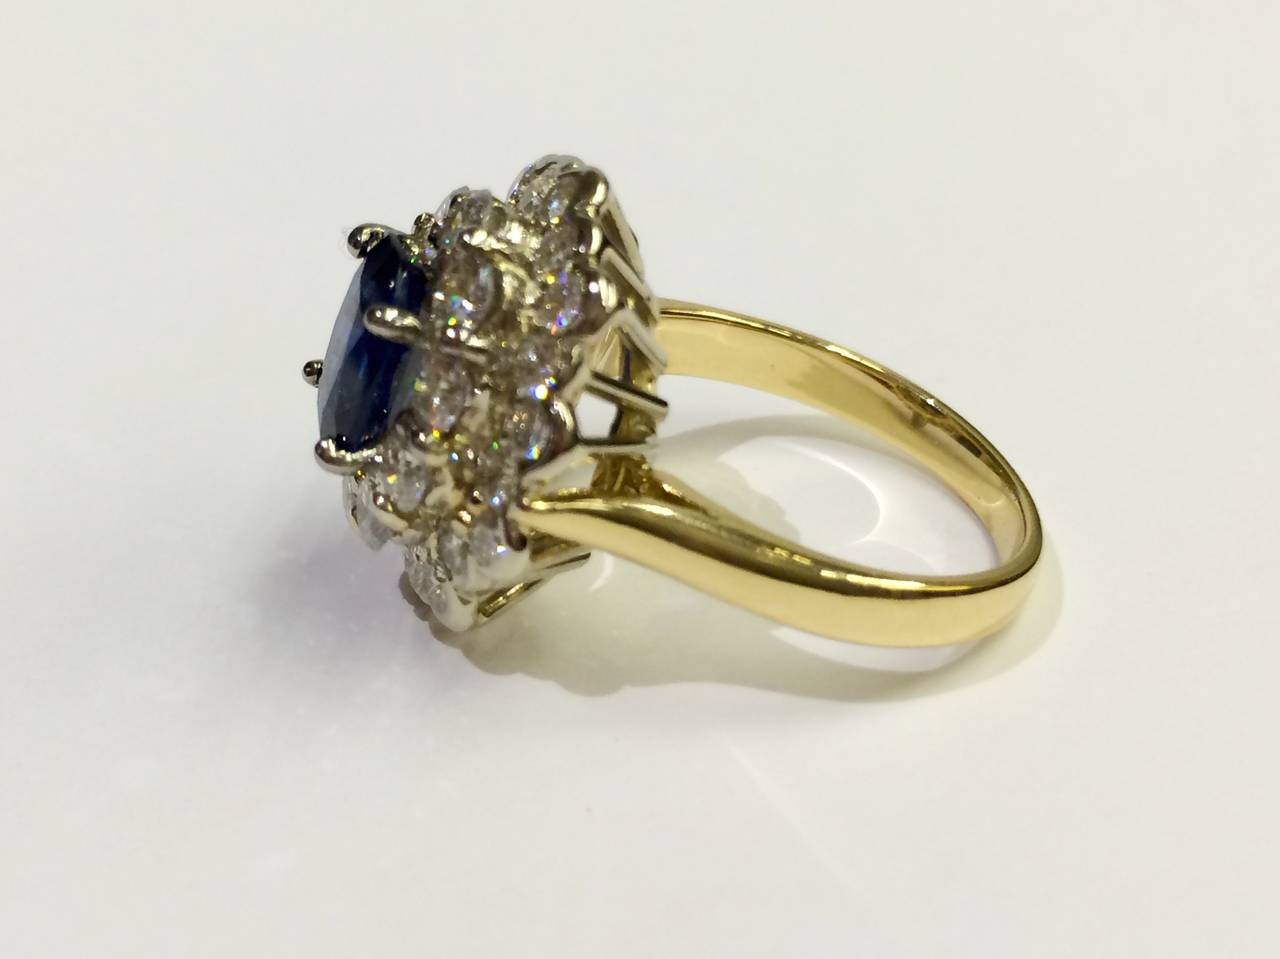 1 Carat Diamond Ring on Finger Hand 2 Ct Size Comparison 12 15 3 05 Price Engagement Rings Buy